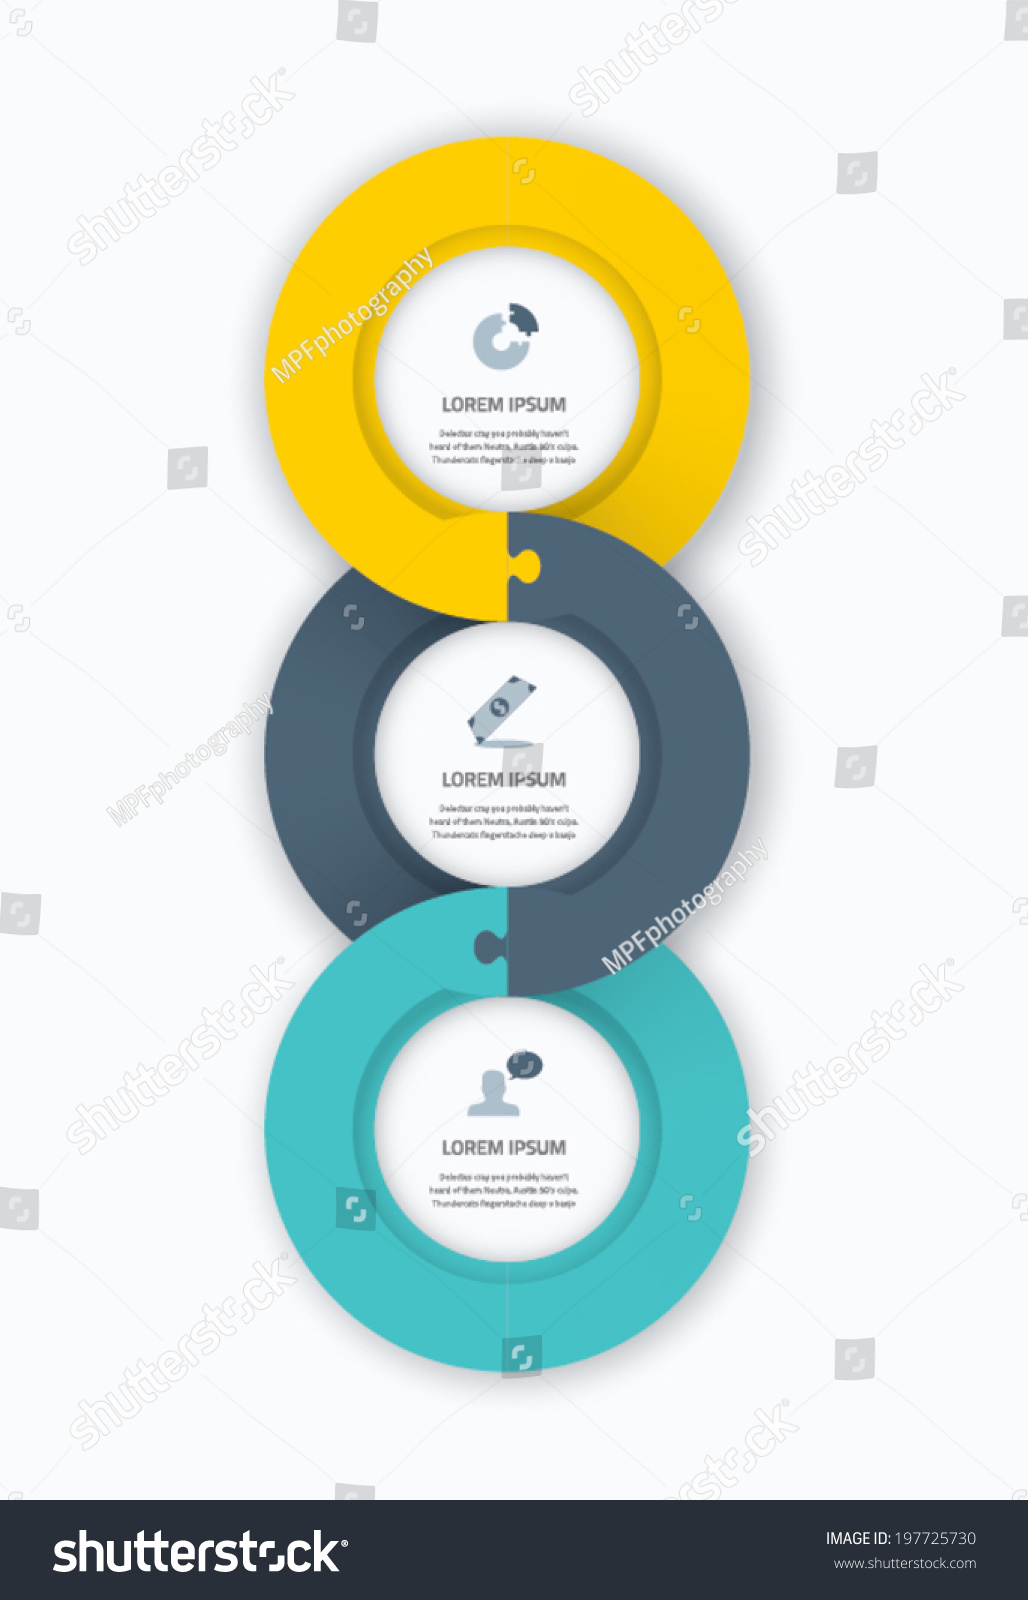 Infographic Circle Timeline Web Template For Business With Icons And Puzzle Piece Jigsaw Concept